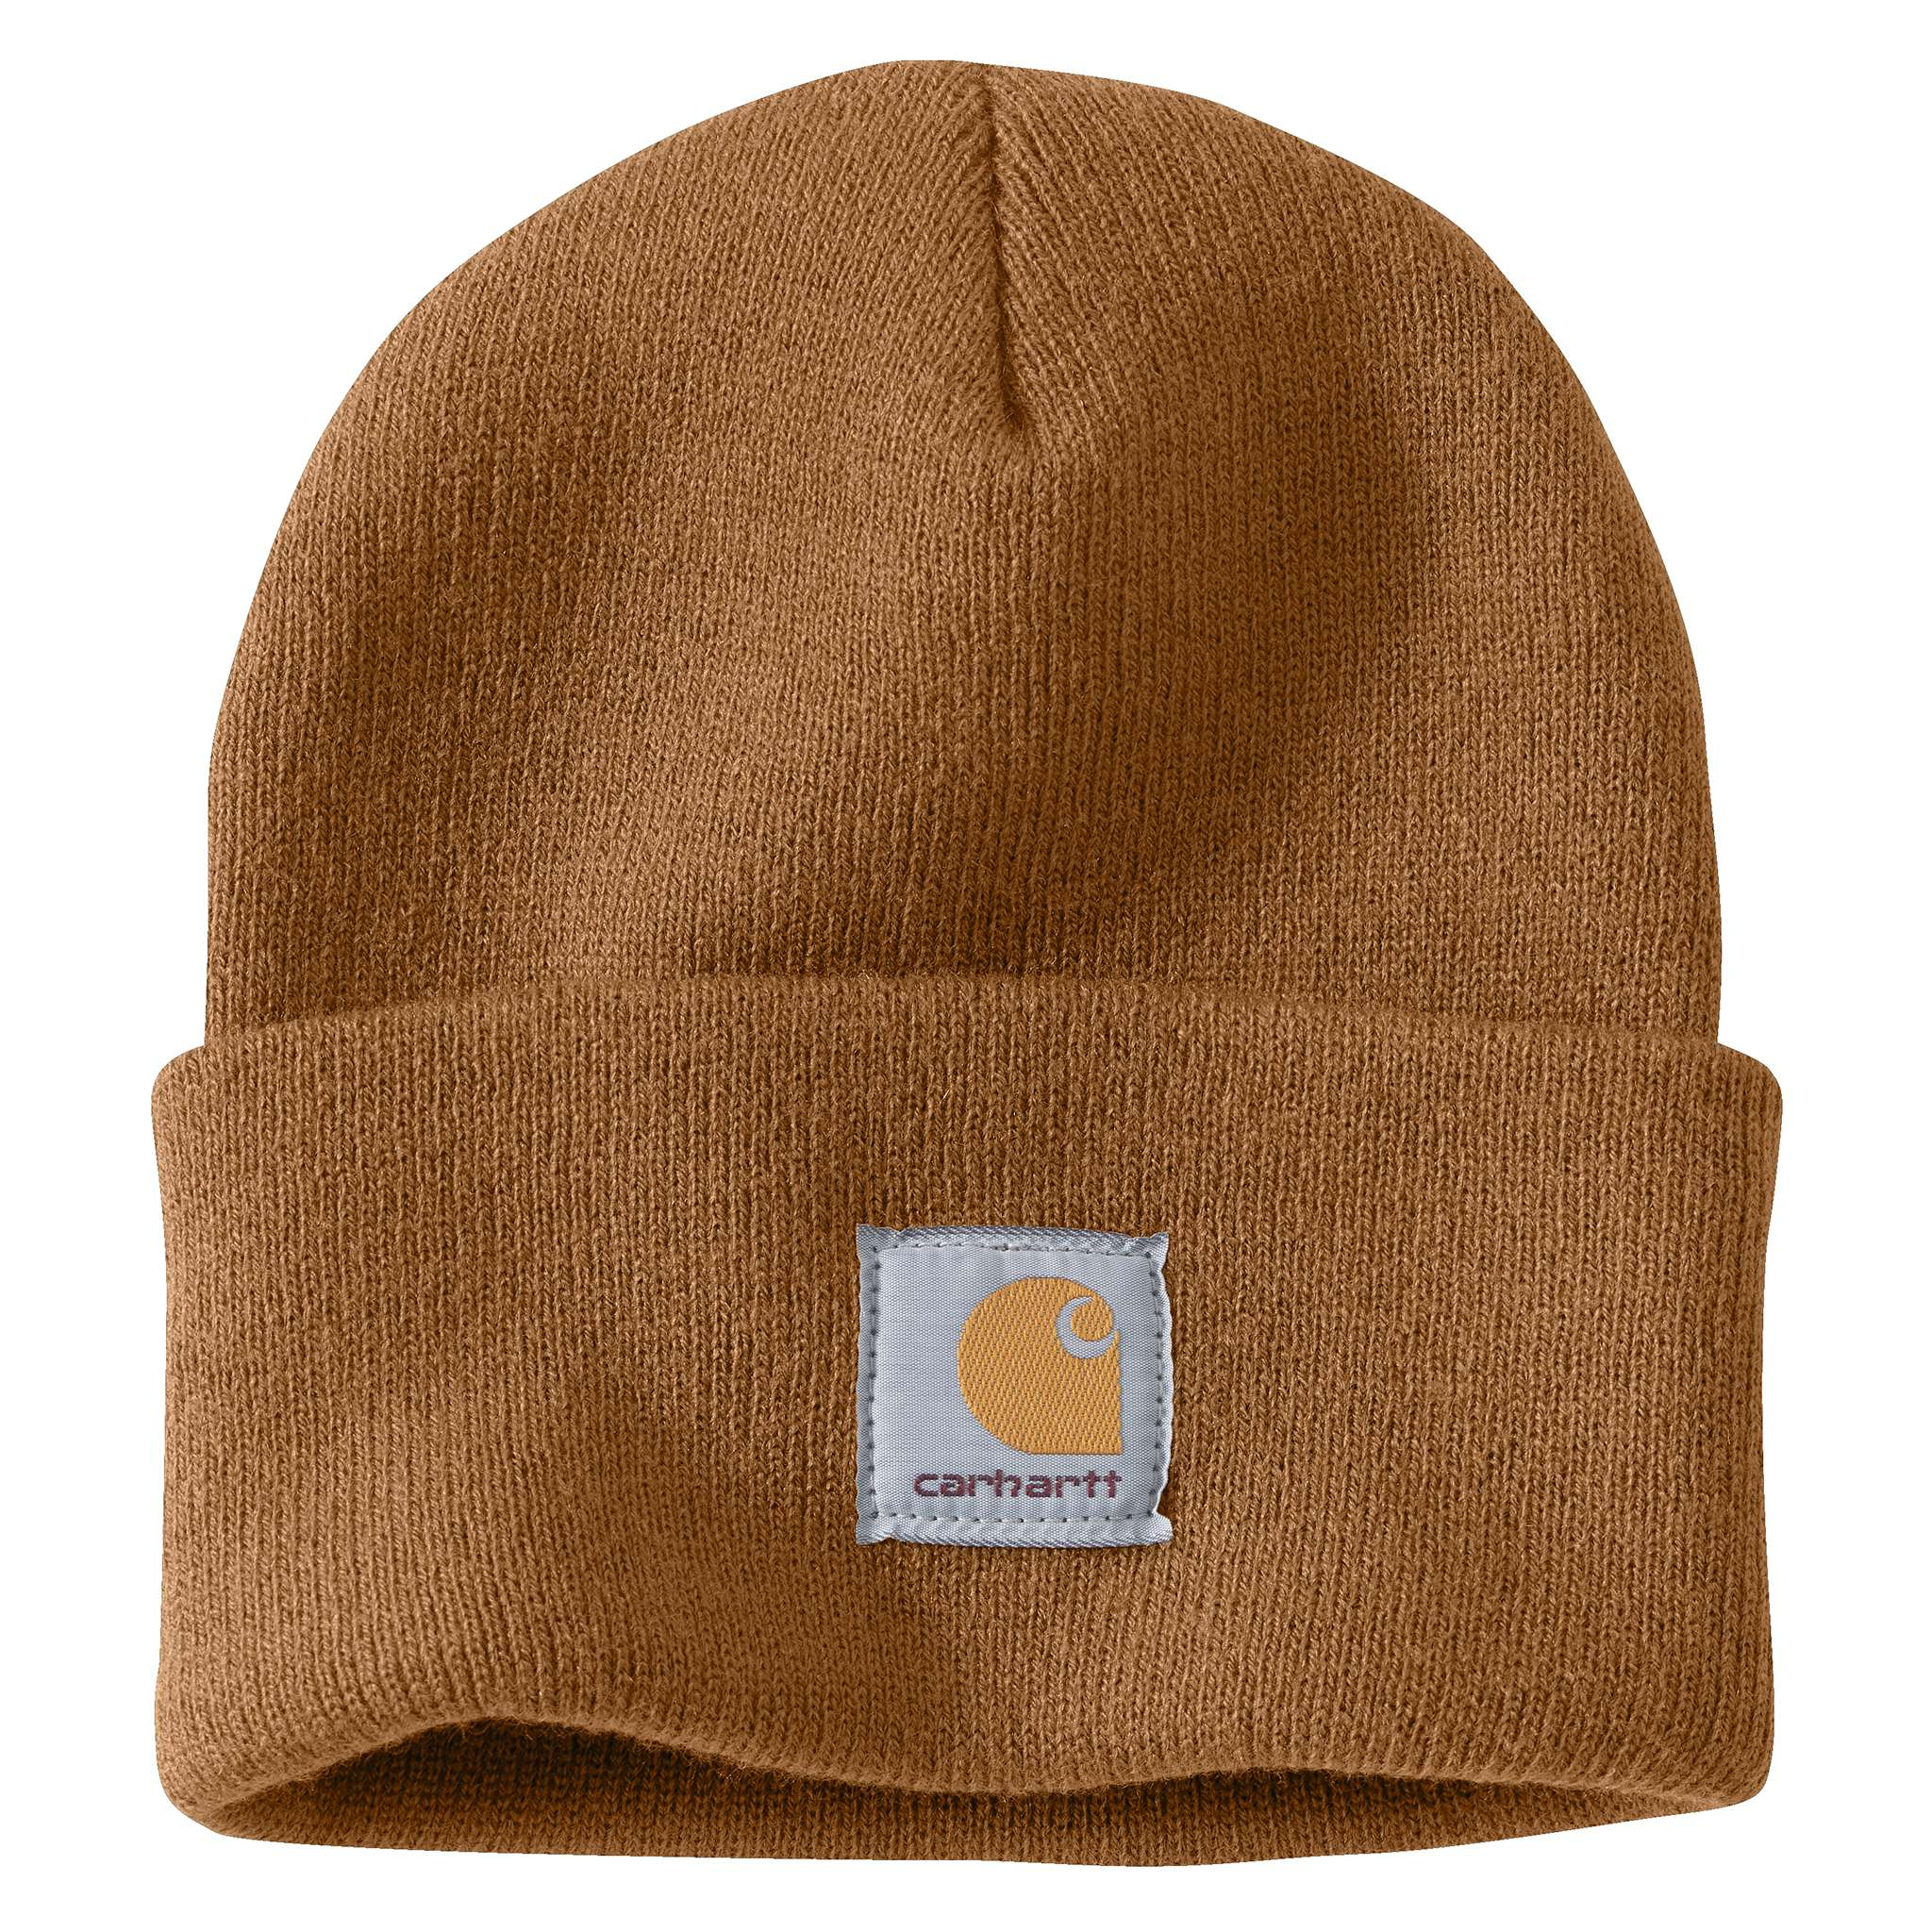 ... Carhartt Brown Carhartt beanie with Carhartt label stitched on front ... e29959986ae